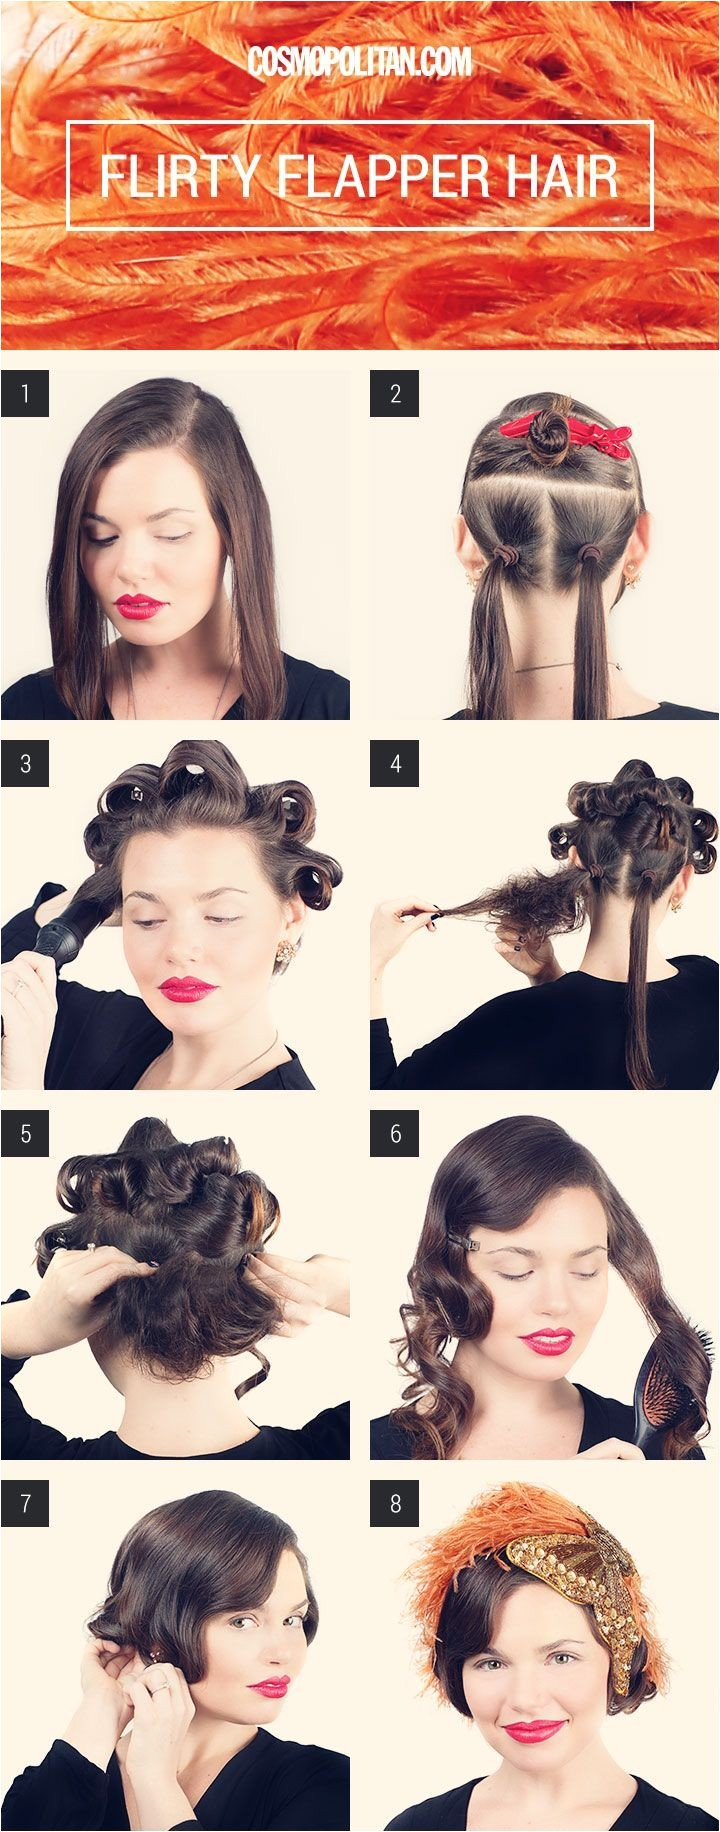 FLIRTY FLAPPER BOB Make your long hair look like a short and wavy bob with this tutorial from Matt Fugate